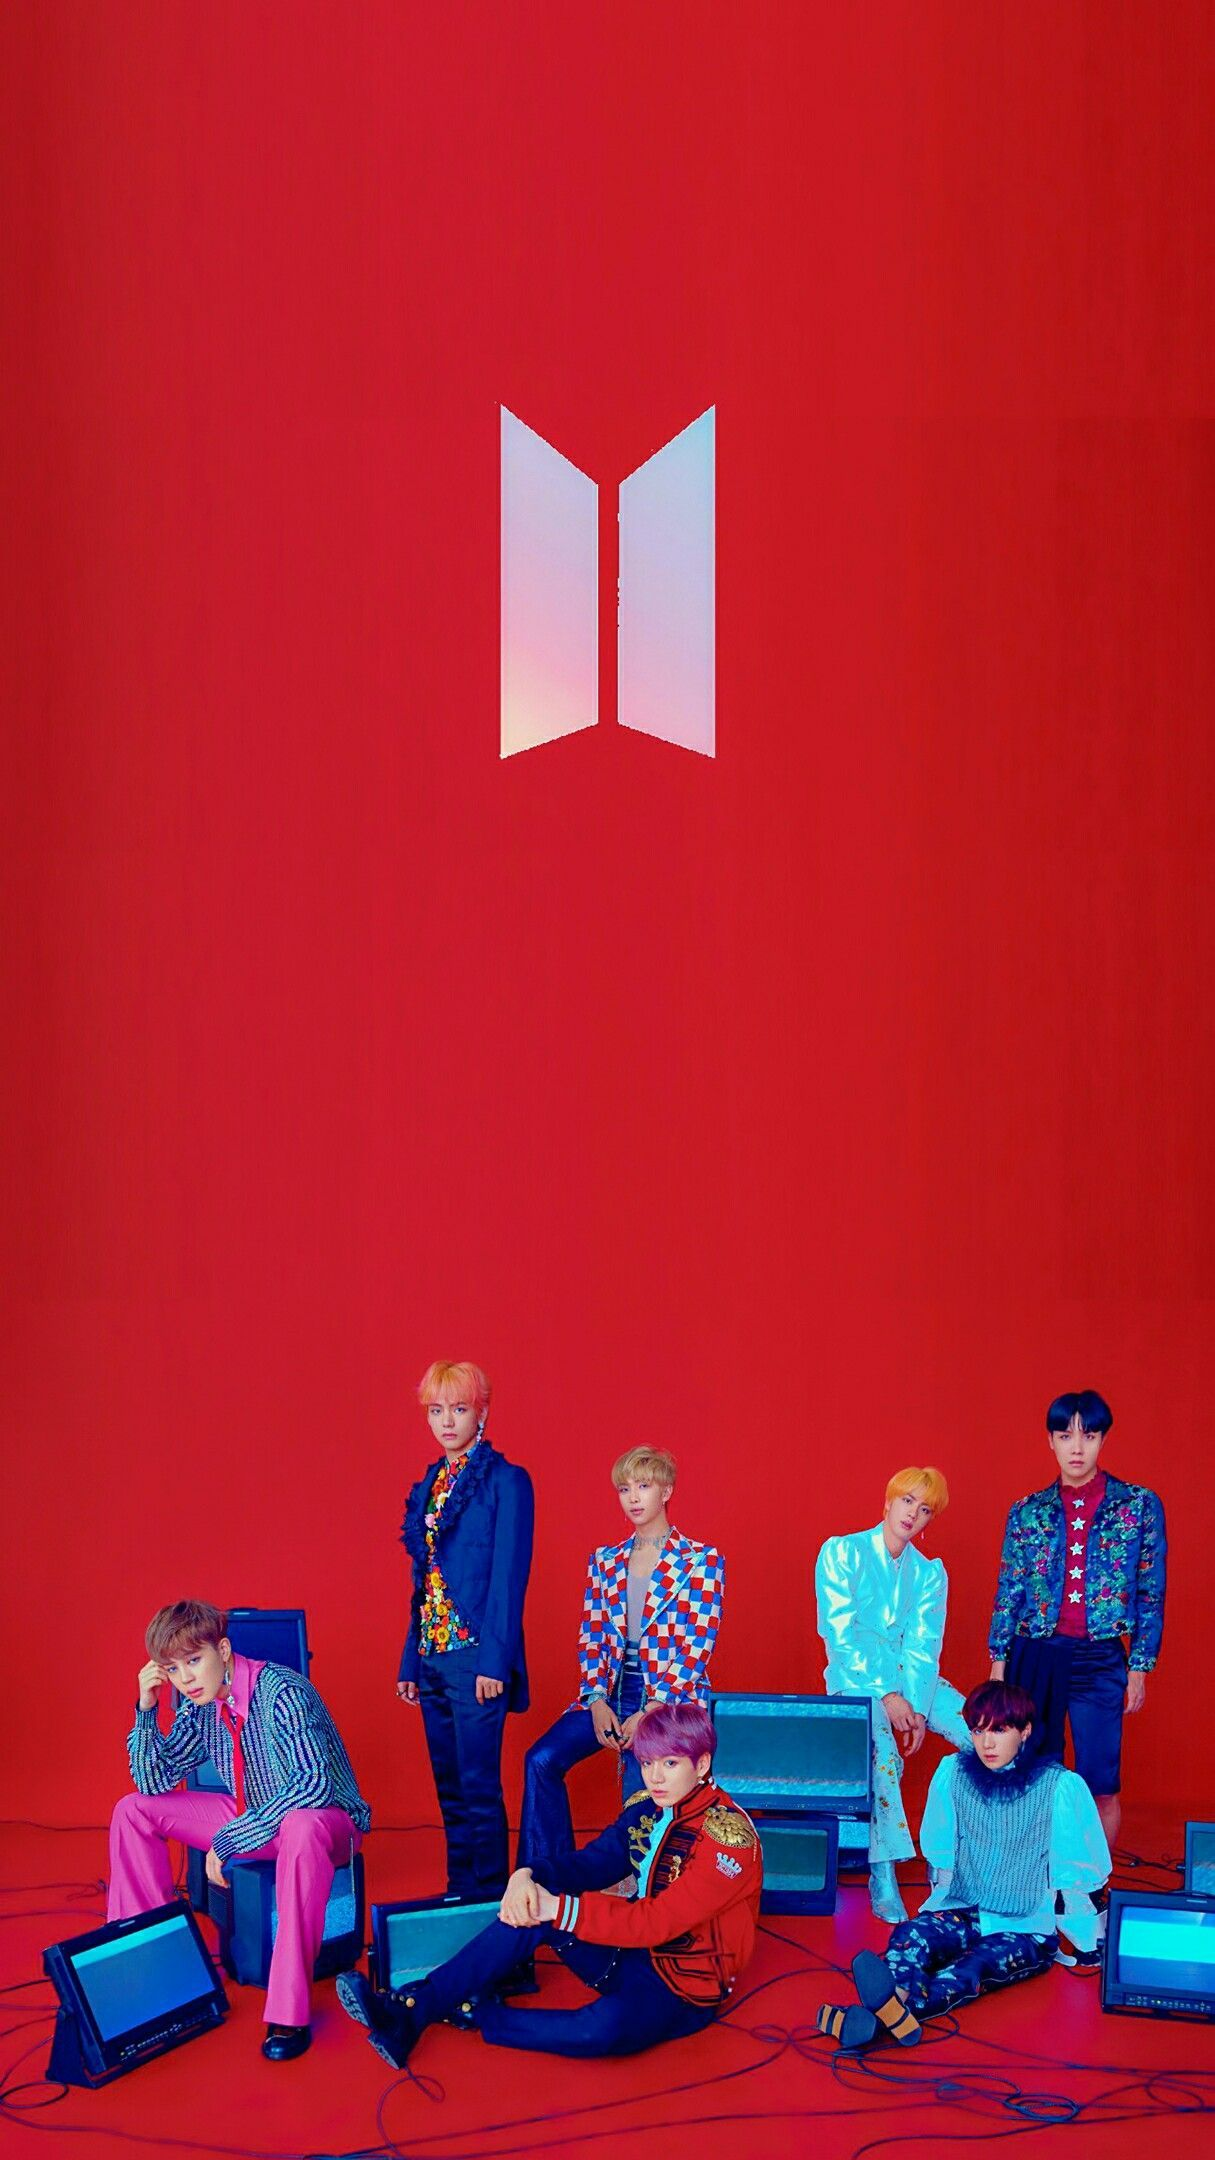 Free Download Bts Edits Bts Wallpapers Bts Love Yourself Answer Concept For Desktop Mobile Tablet 12 Bts Wallpaper Bts Wallpaper Desktop Bts Love Yourself